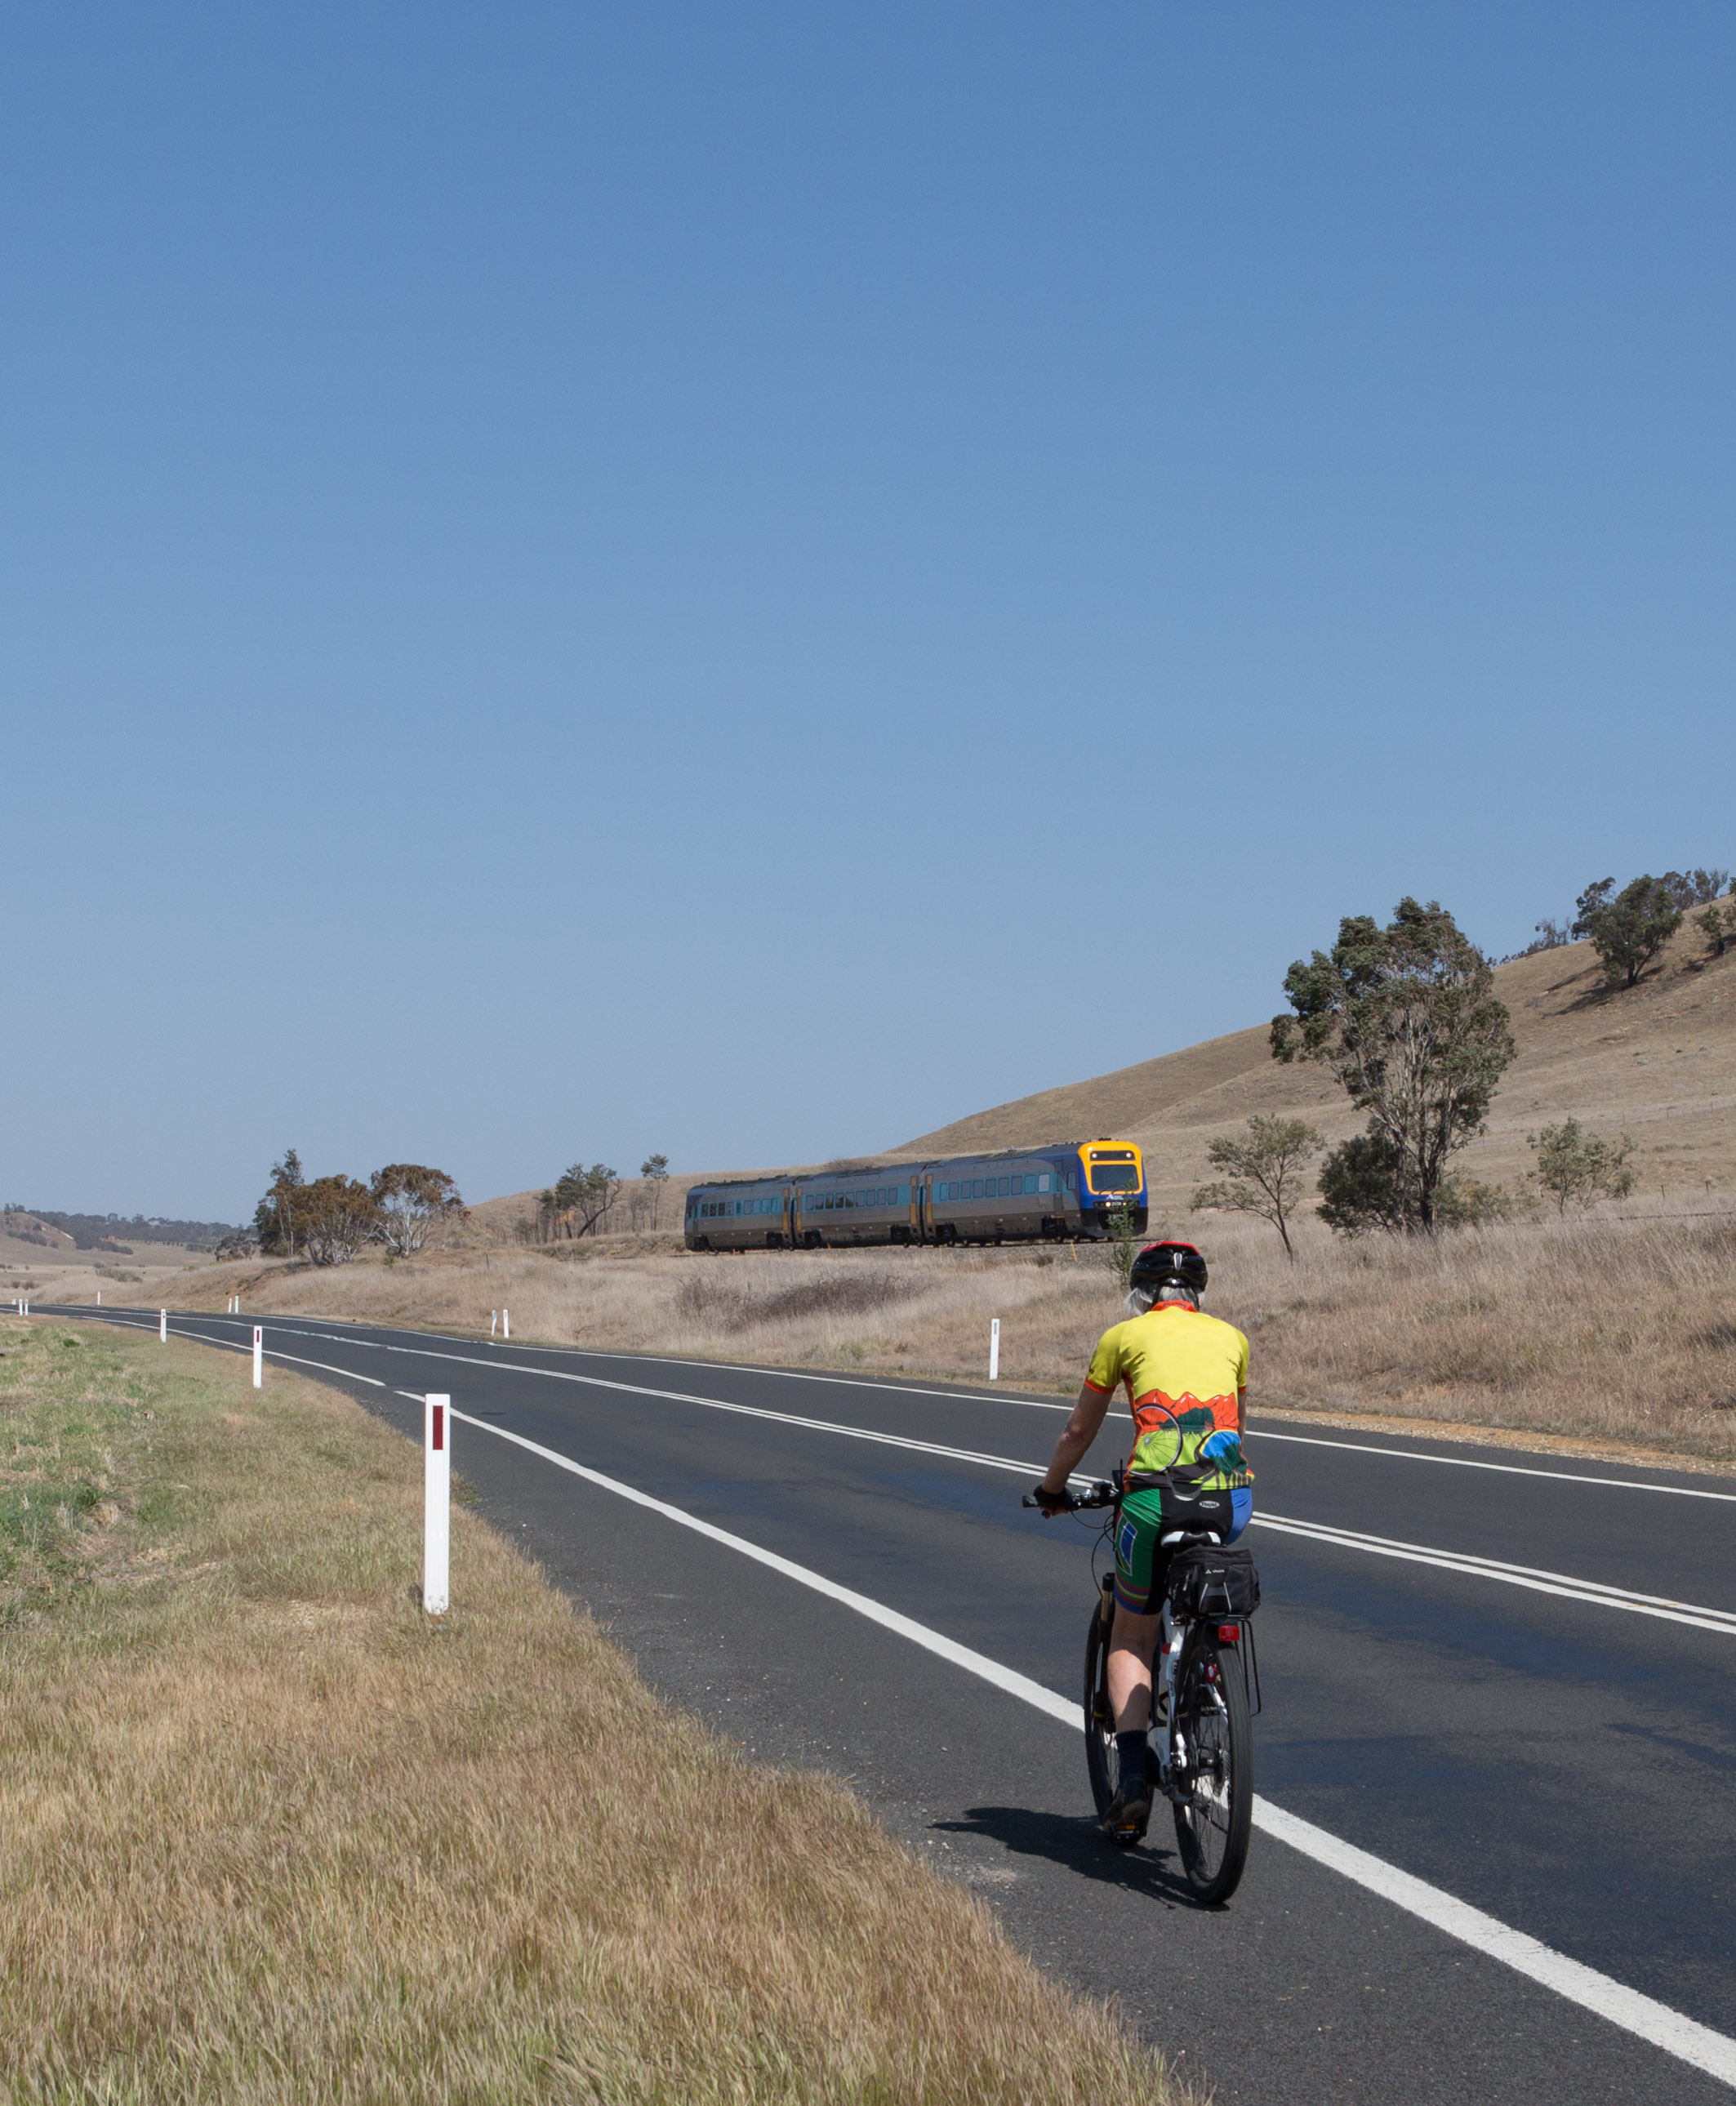 A cyclist on one of our Canberra and surrounding NSW bike tours on the road to Tarago with the Canberra to Sydney XPT heading towards Sydney.